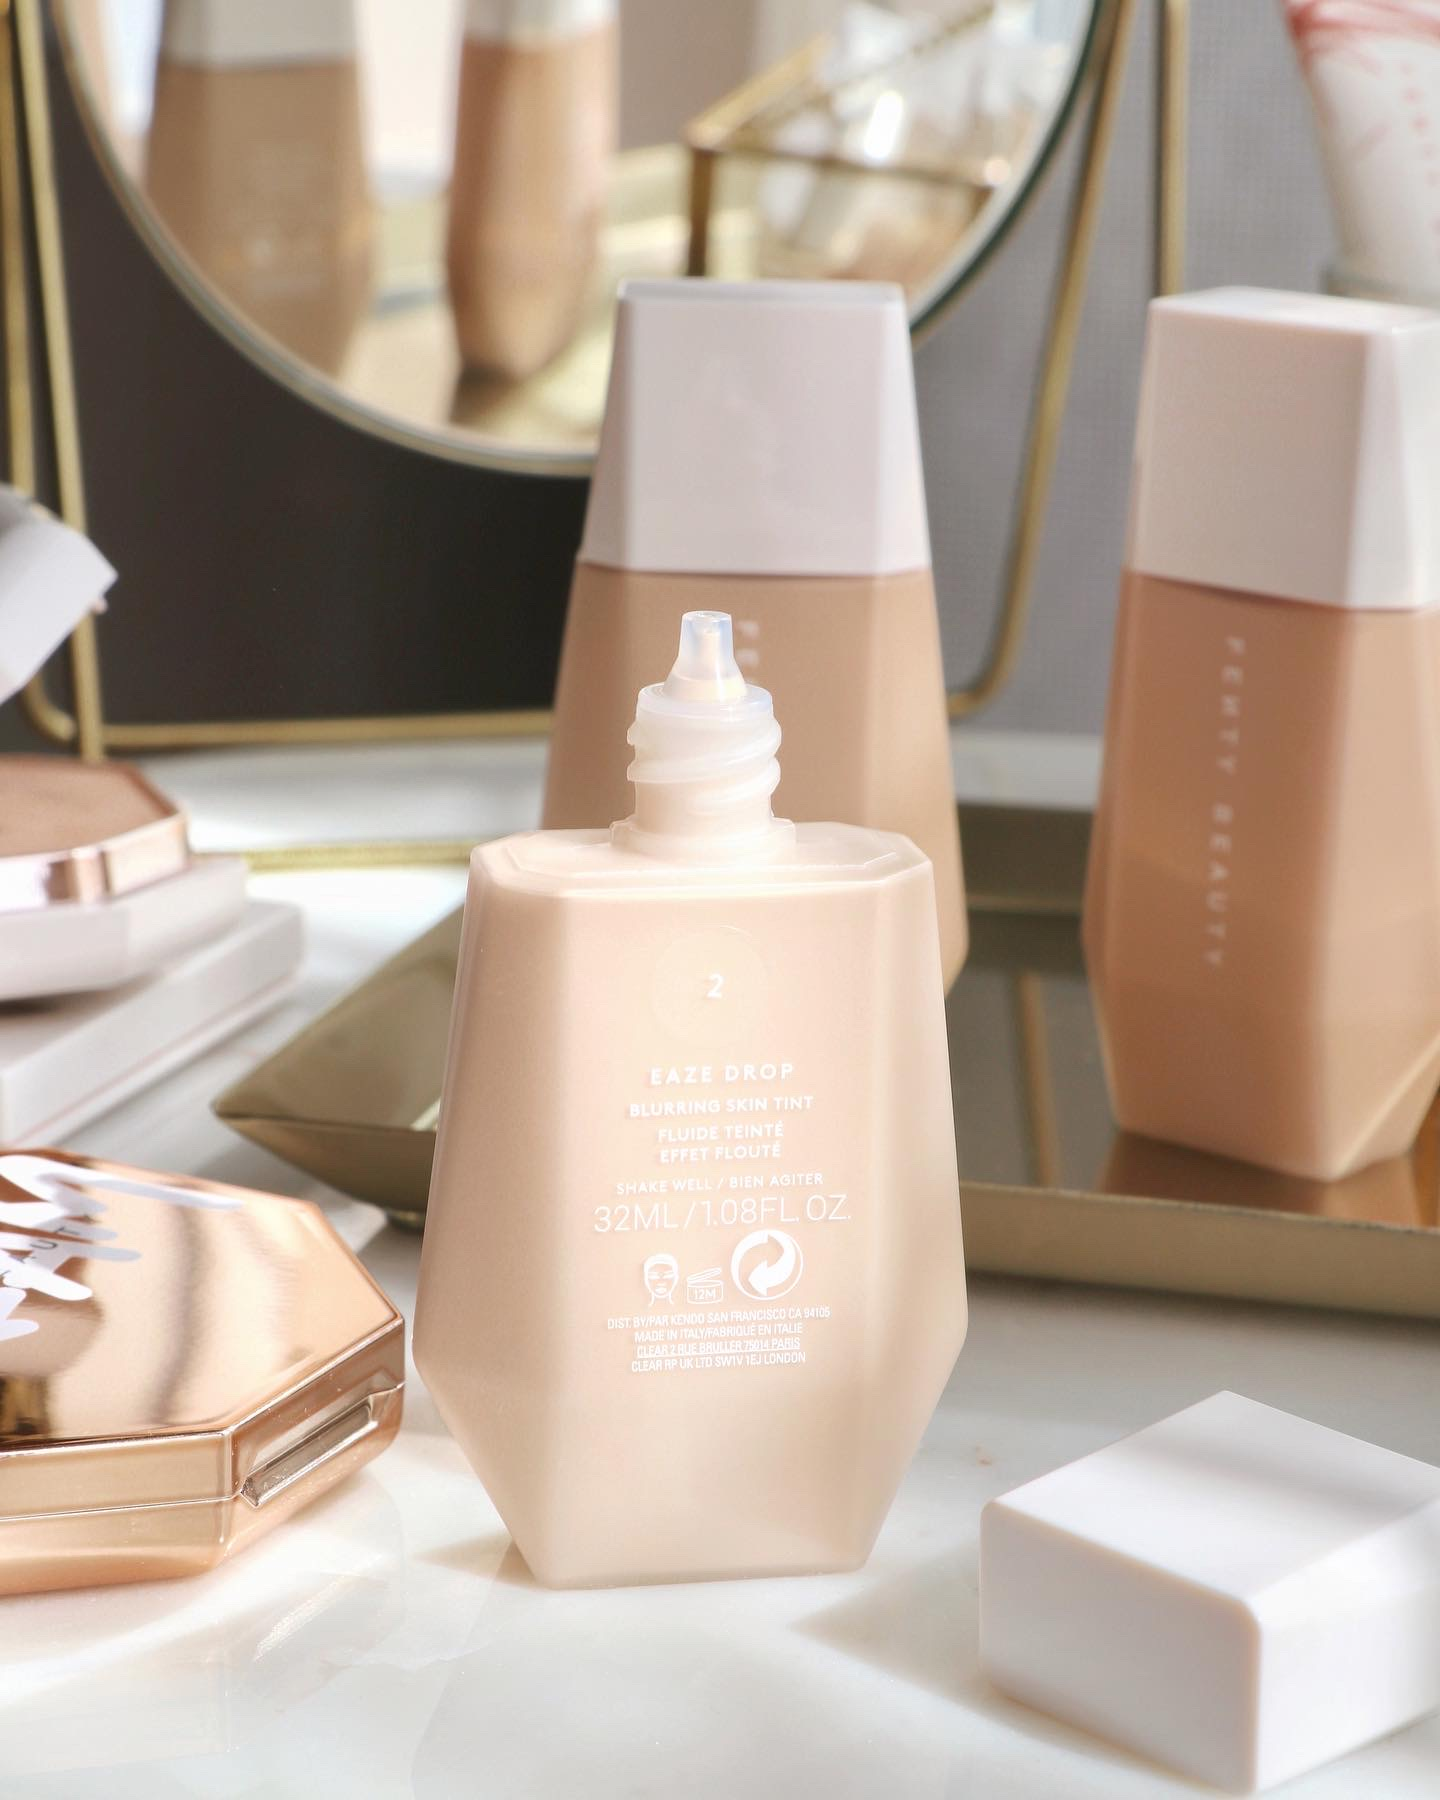 Fenty Beauty Eaze Drop Blurring Skin Tint Review & Swatches